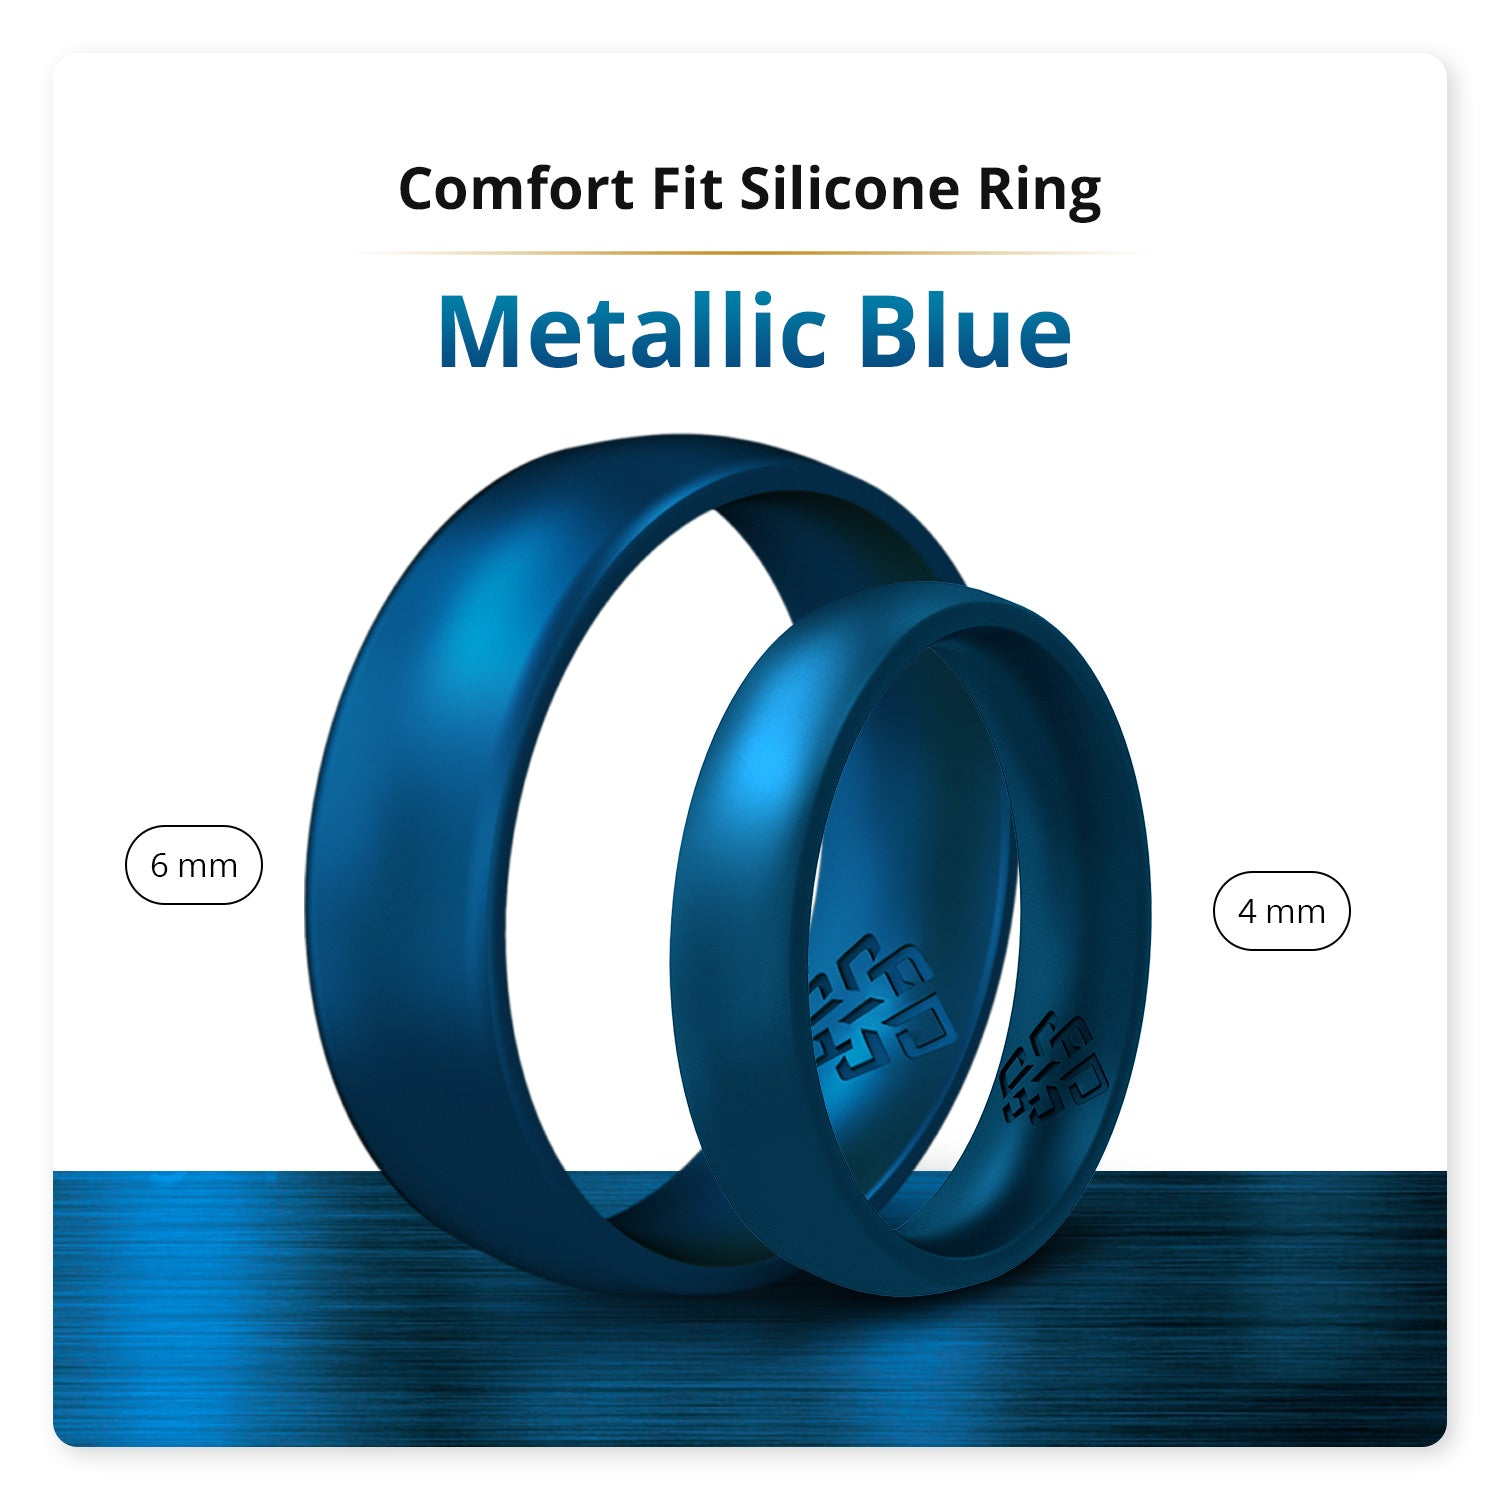 Metallic Blue Comfort Fit Silicone Wedding Ring